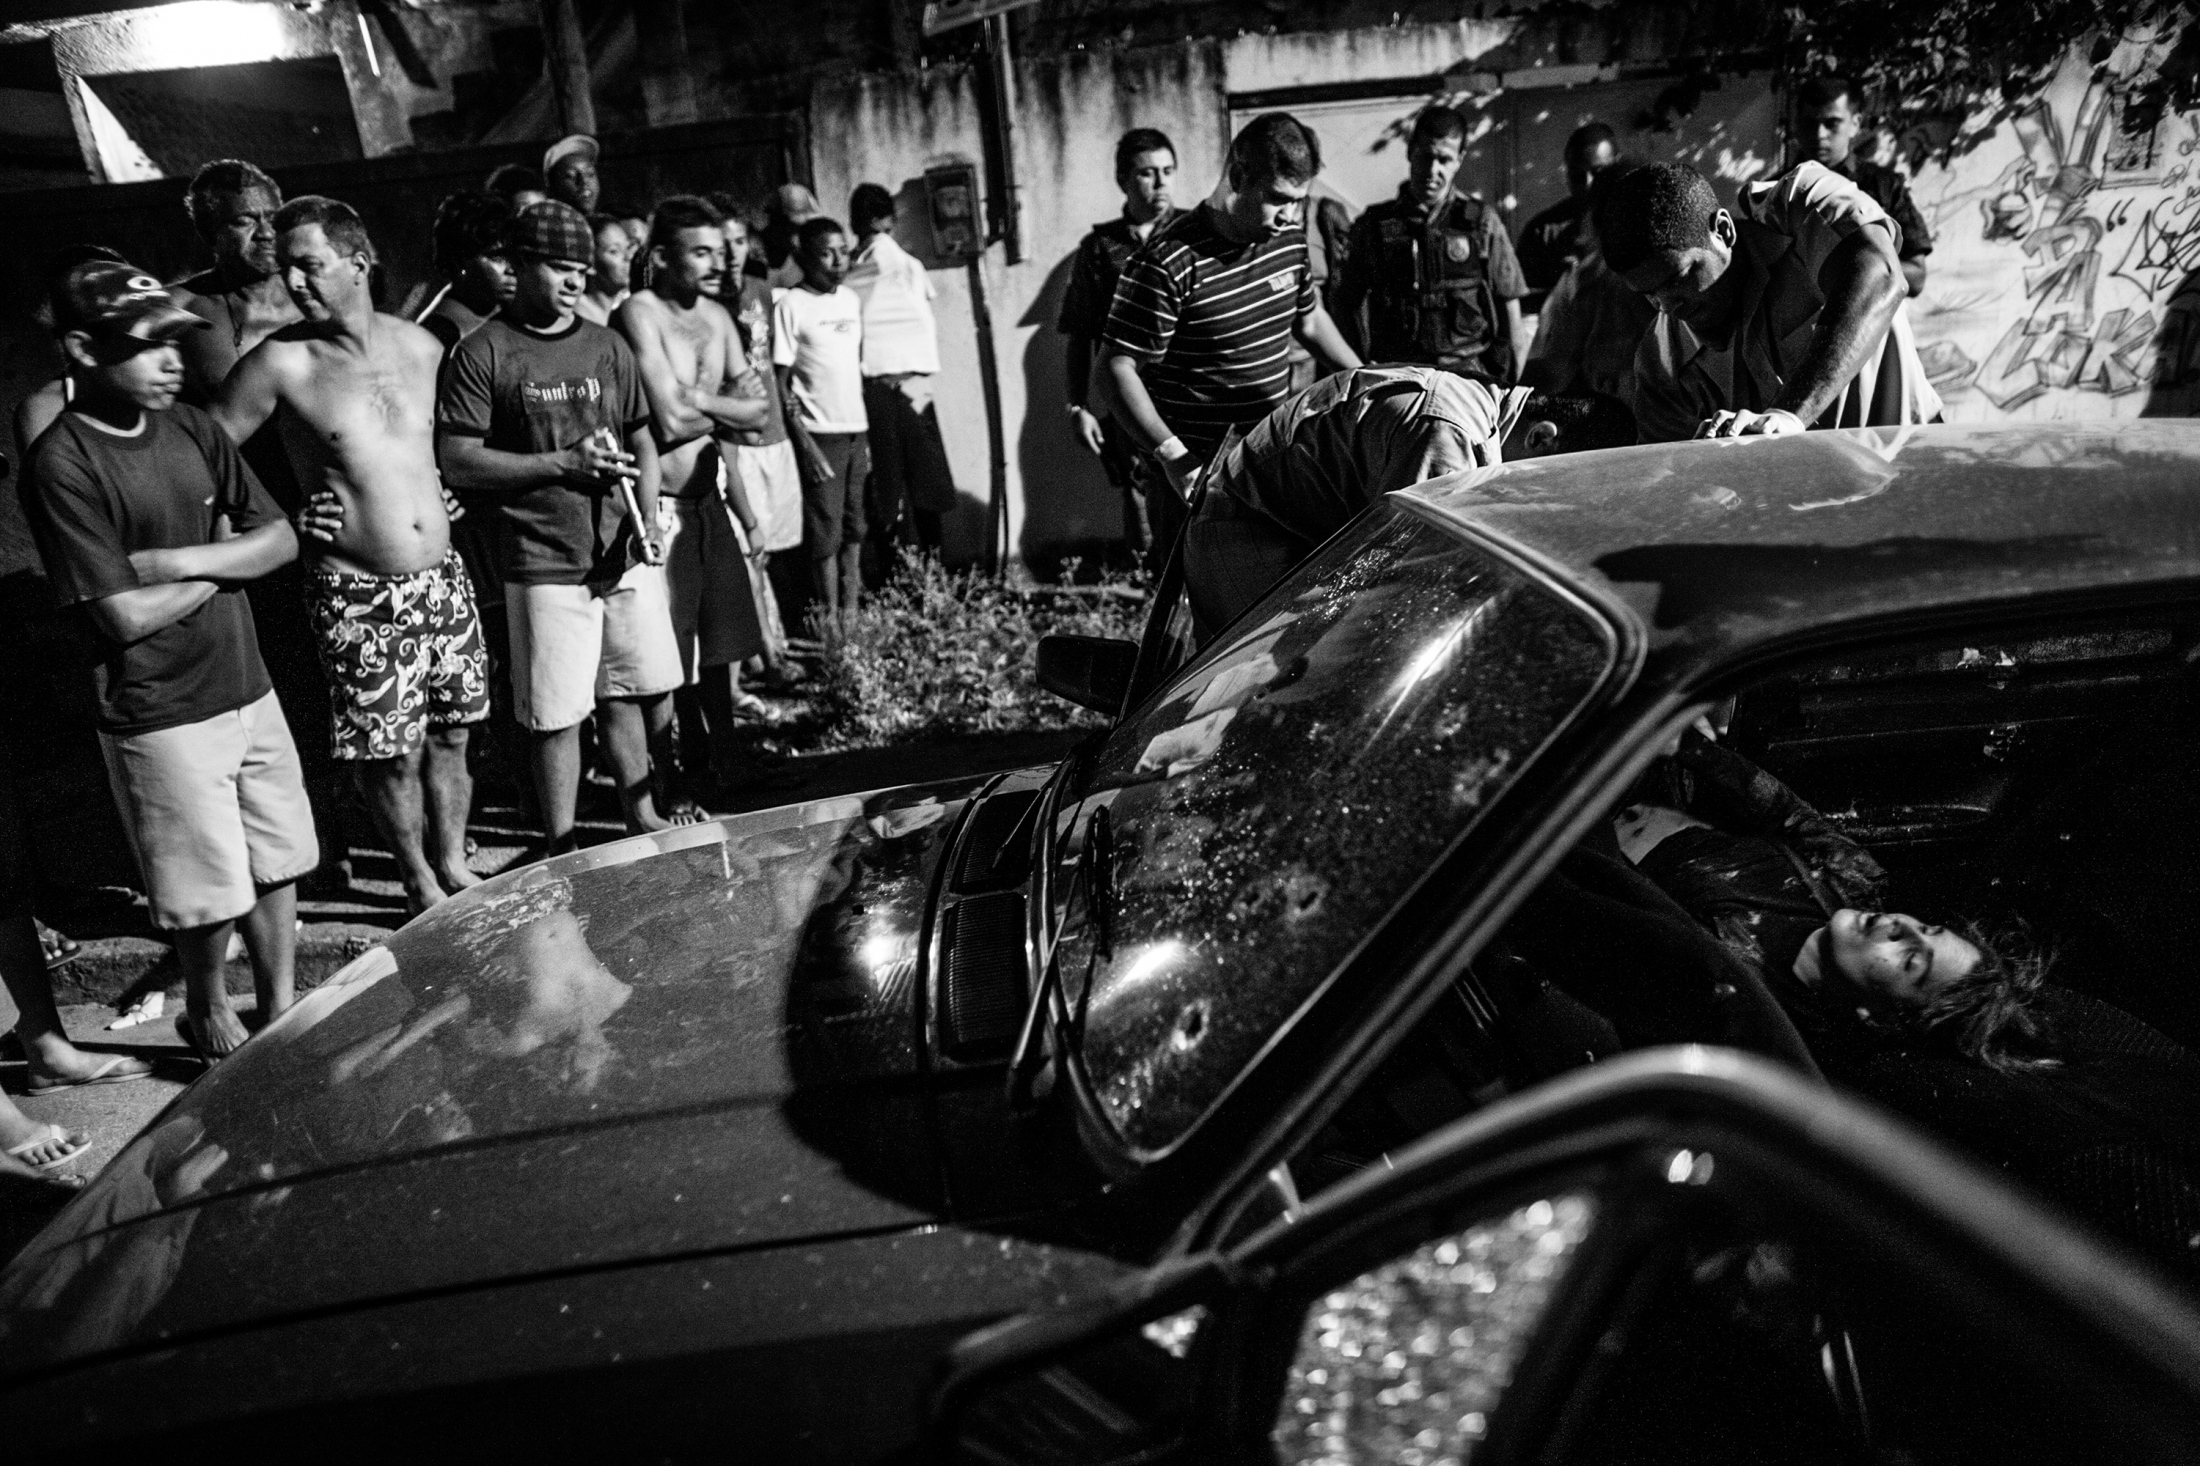 A woman's body is removed by firefighters from a crime scene where three people were shot dead inside a car in Santa Cruz, on the outskirts of Rio de Janeiro. July 2008.